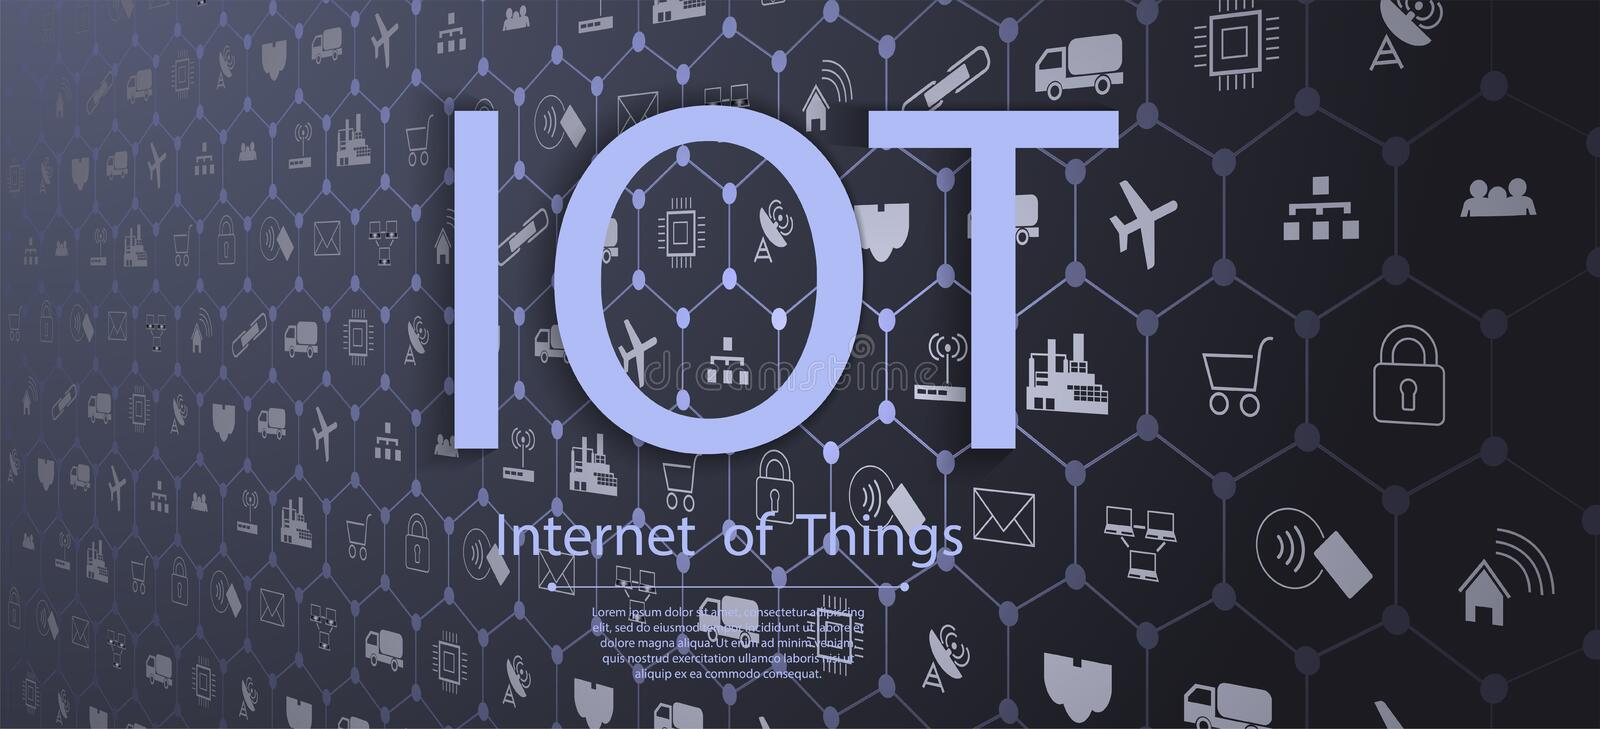 Internet of things IOT, devices and connectivity concepts on a network, cloud at center. vector illustration